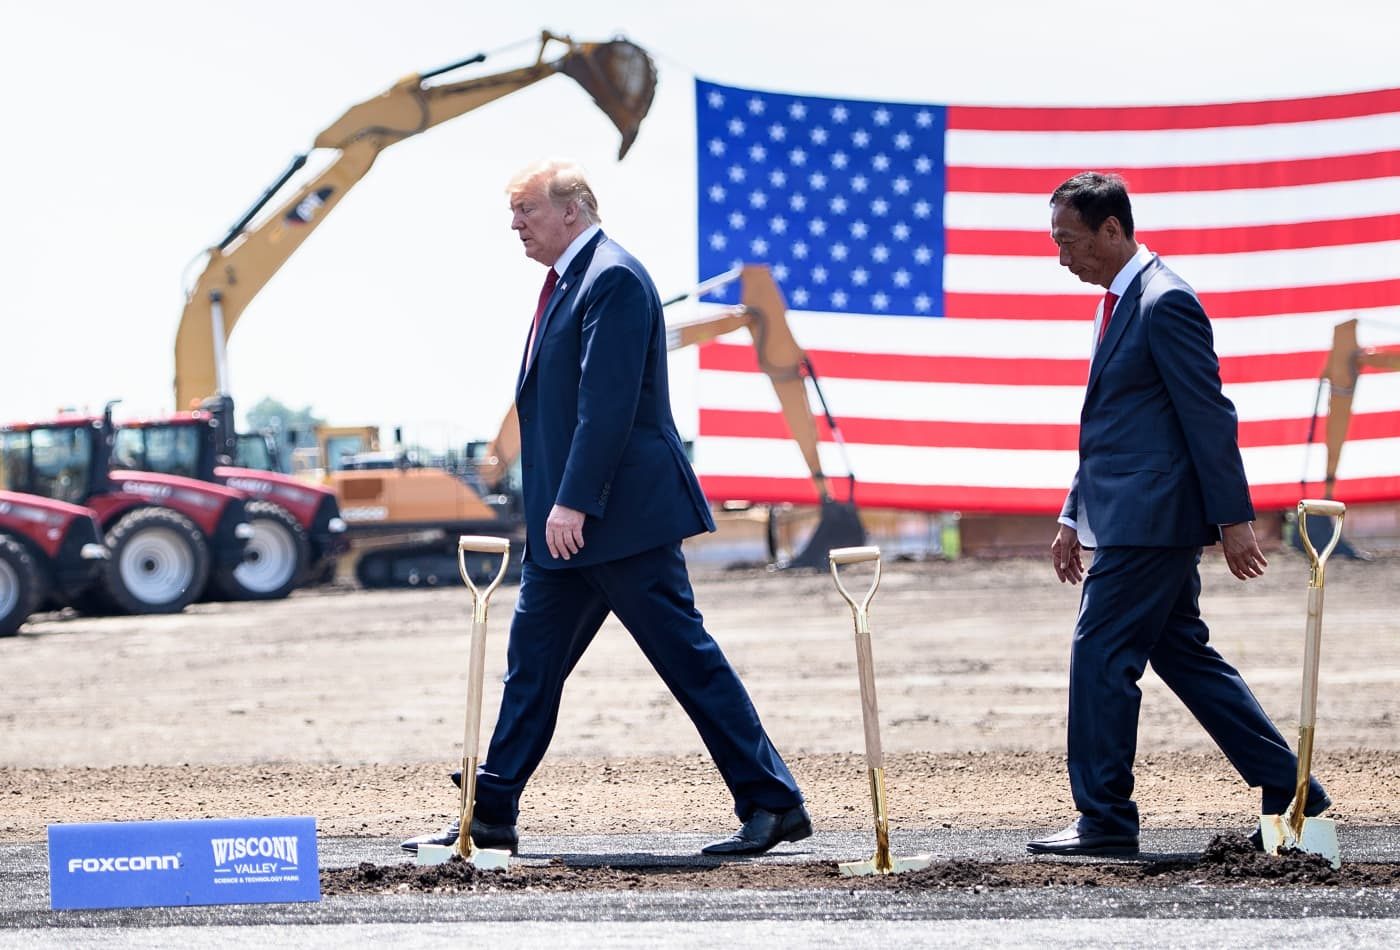 White House says Foxconn will invest further in Wisconsin, where its $10 billion plans are already in question